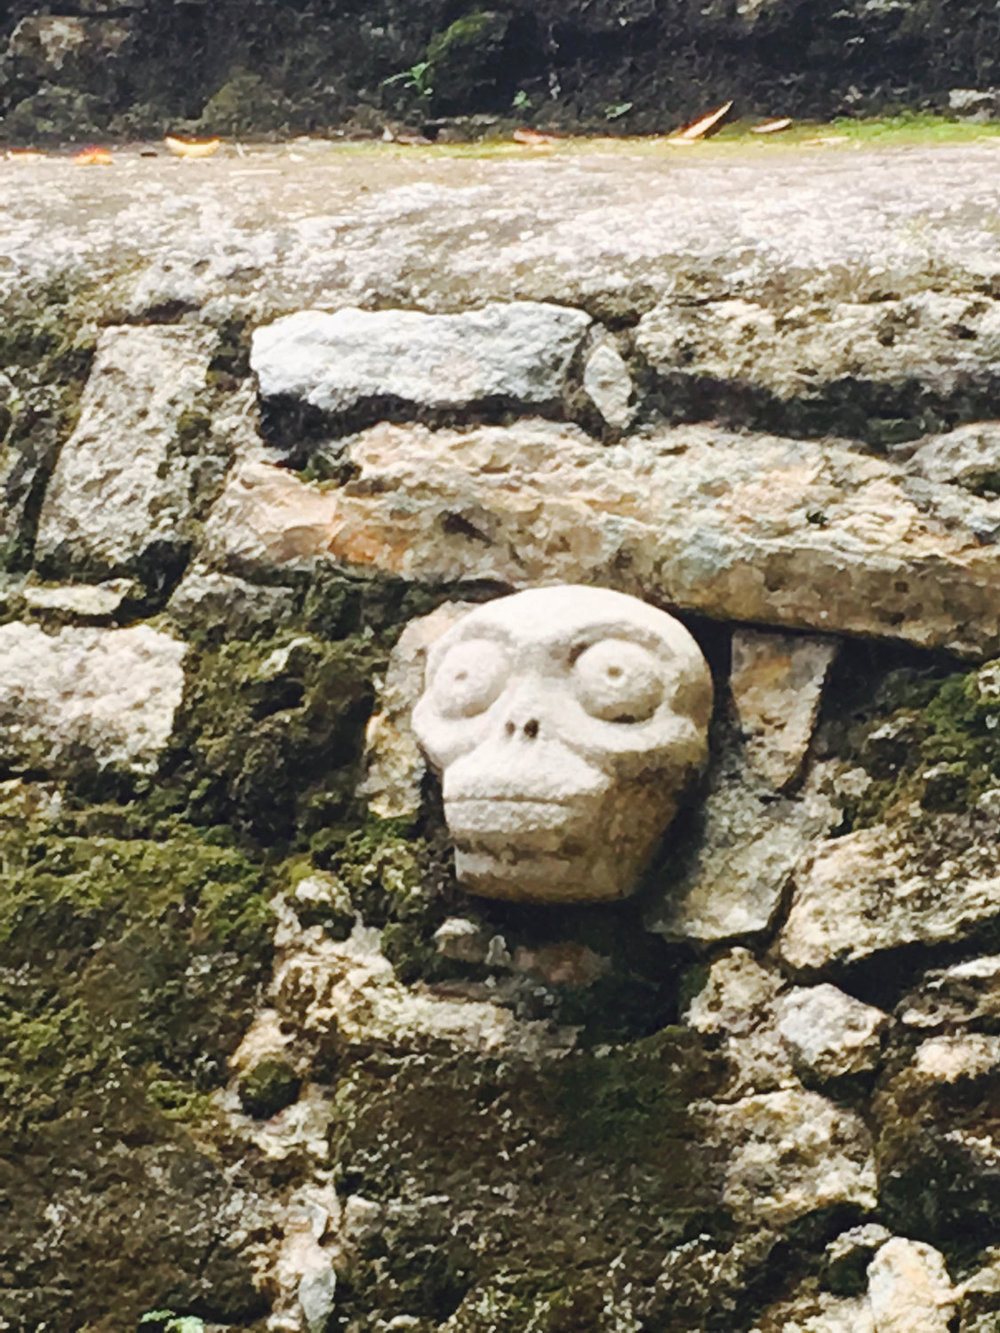 Skull by the Ball Court in the Cobá Group speaks of human sacrifice after the game.